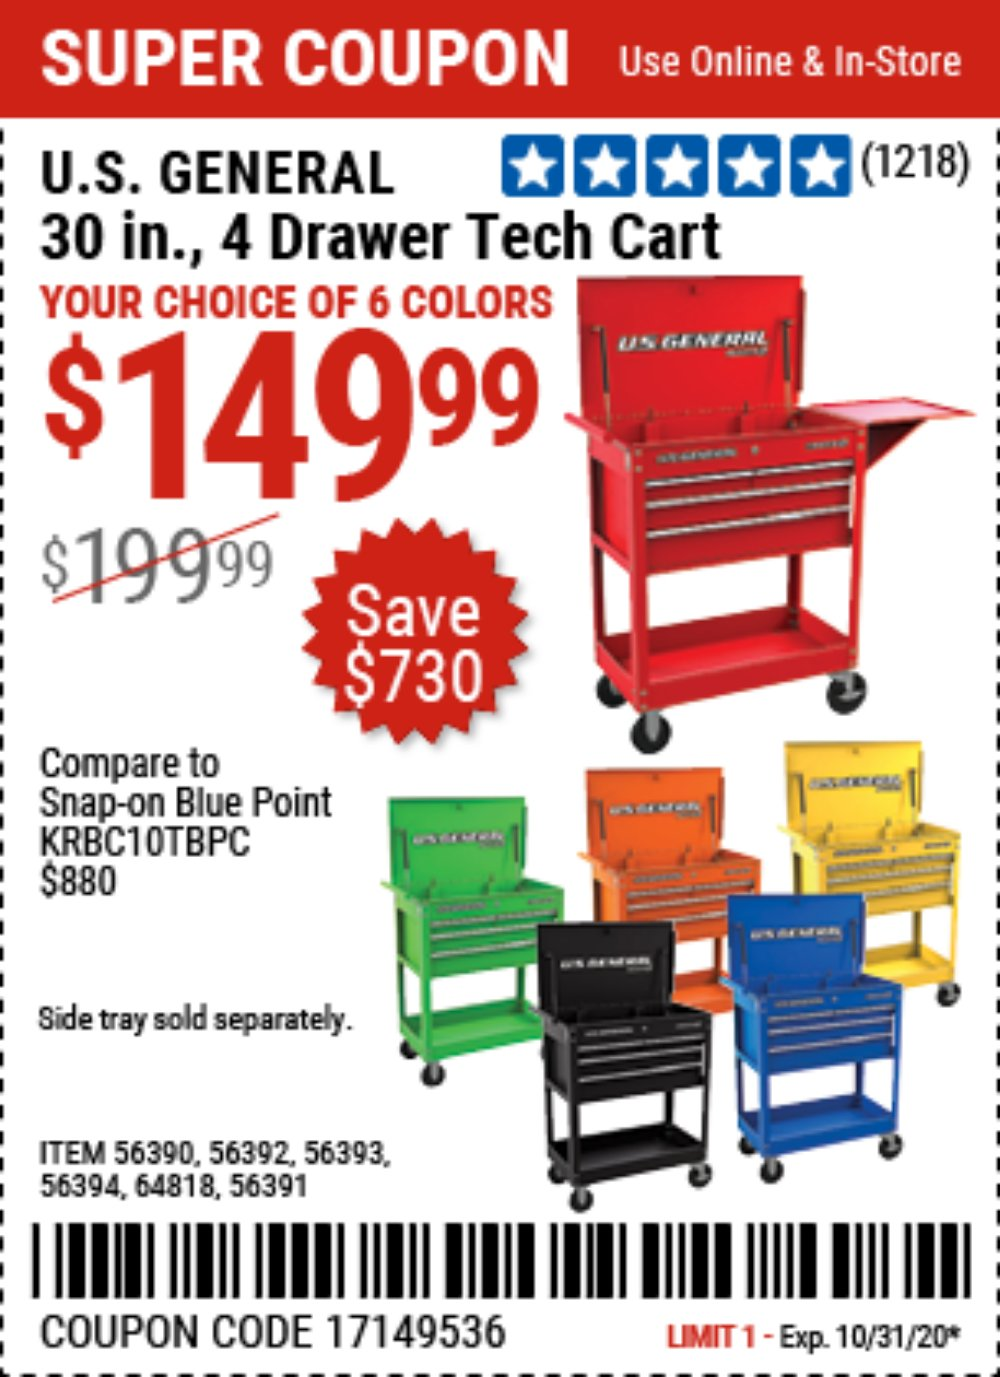 Harbor Freight Coupon, HF Coupons - U.S. GENERAL 30 In. 4 Drawer Tech Cart for $139.99